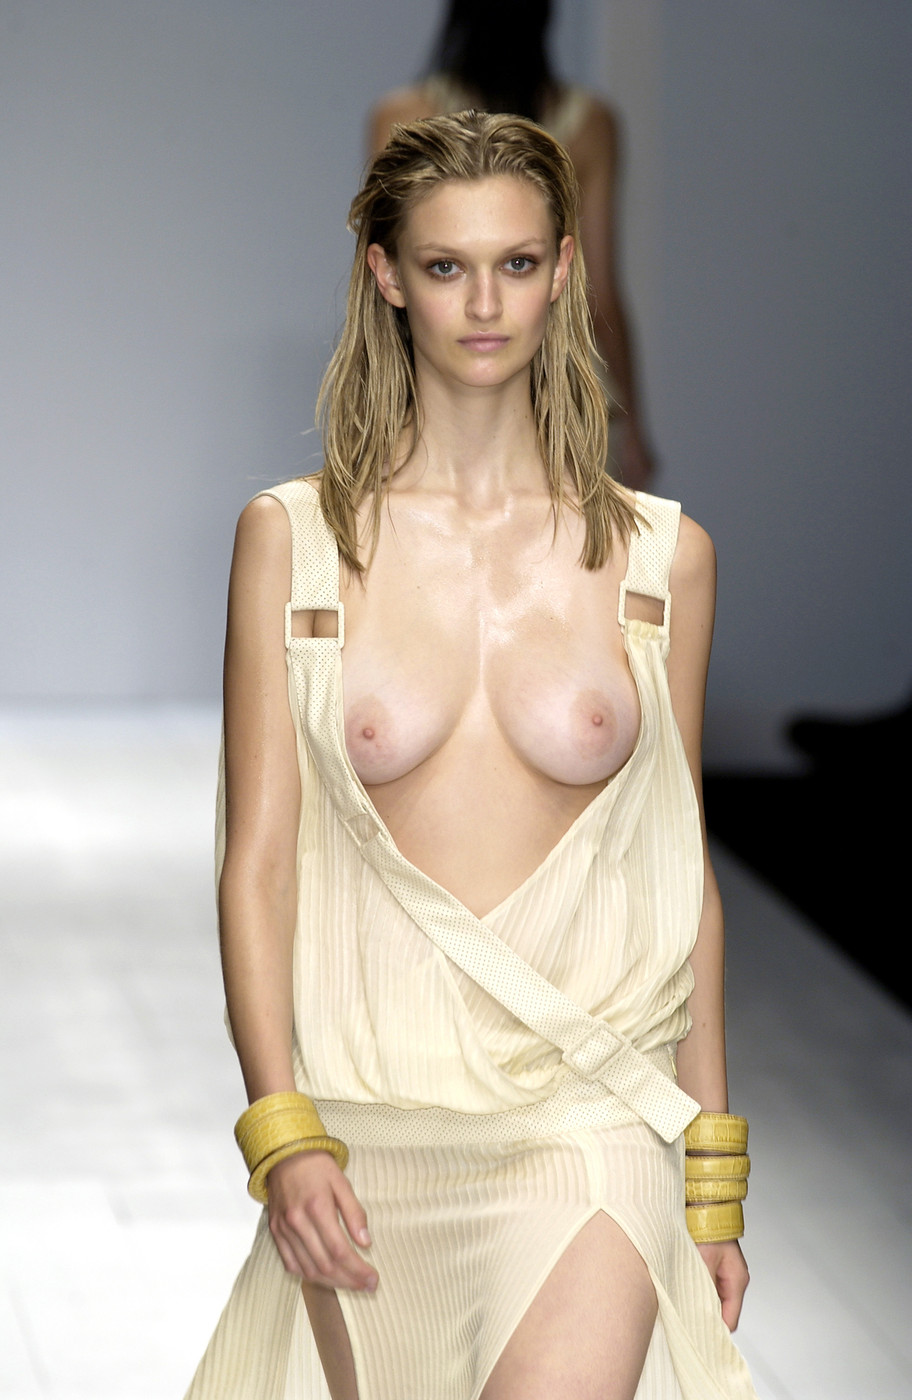 Nude runway models pussies agree